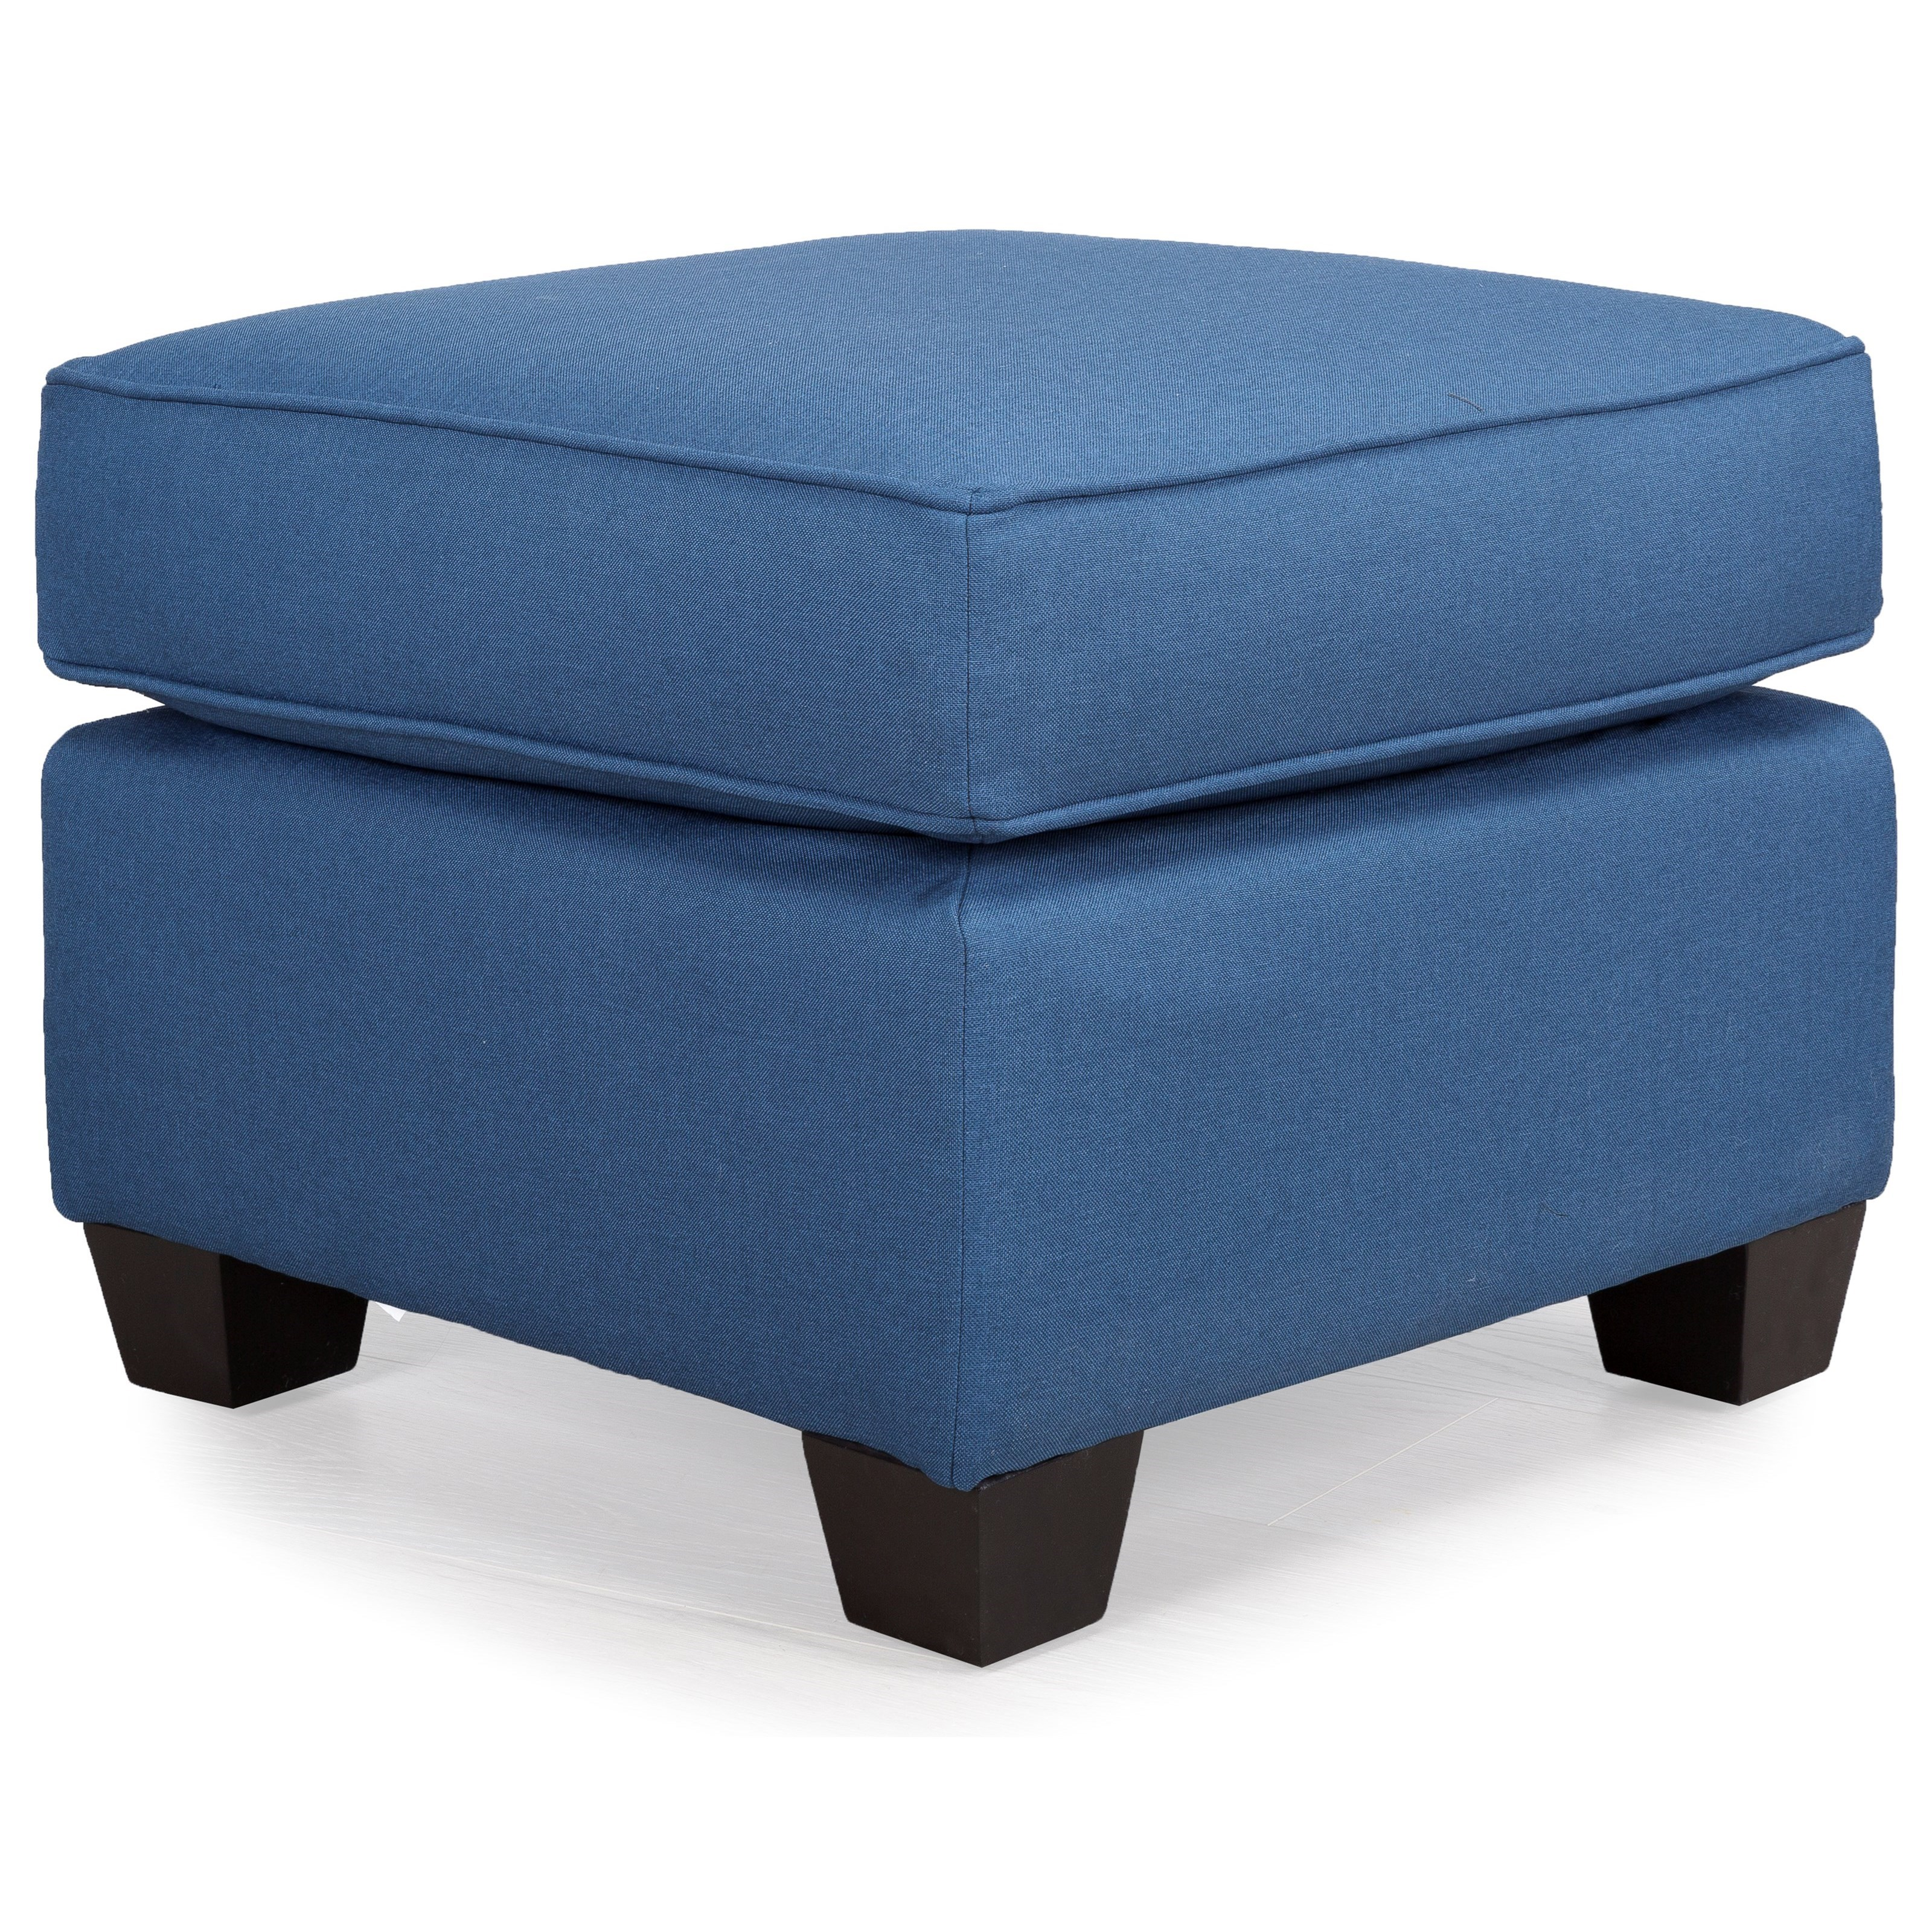 2855 Ottoman by Decor-Rest at Rooms for Less